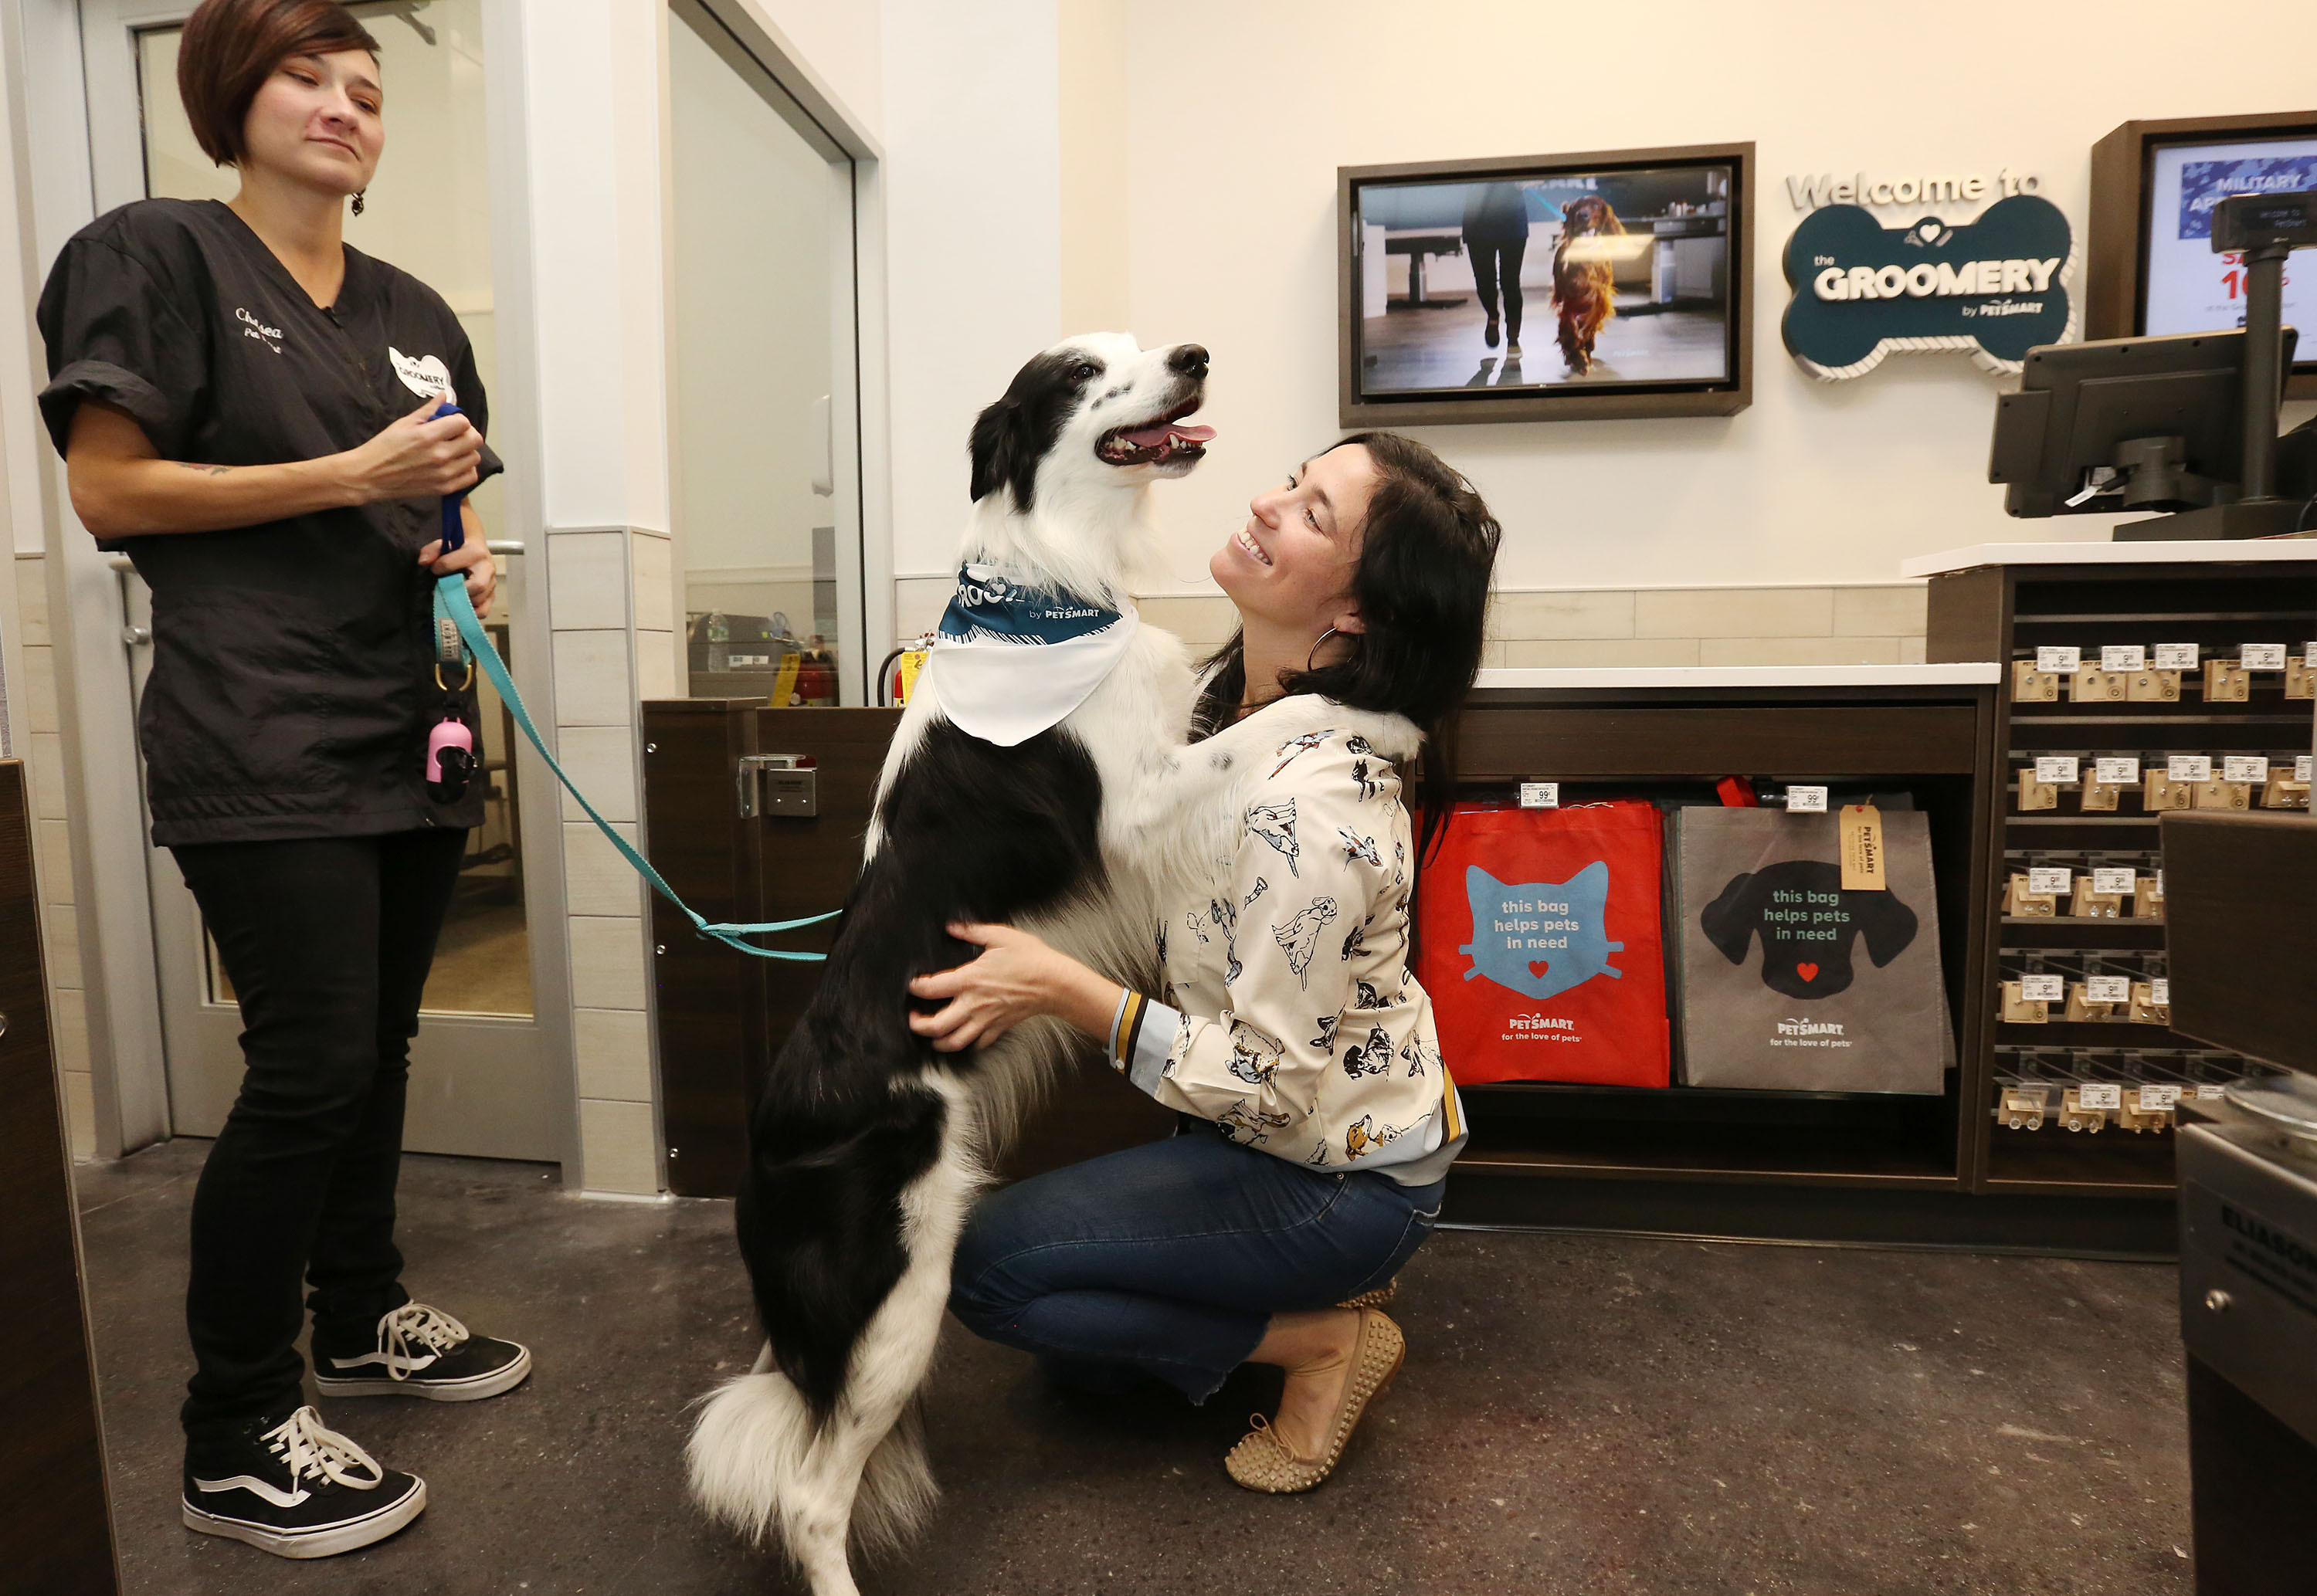 Petsmart Takes Pet Pampering To A New Level With The Launch Of The Groomery By Petsmart Business Wire